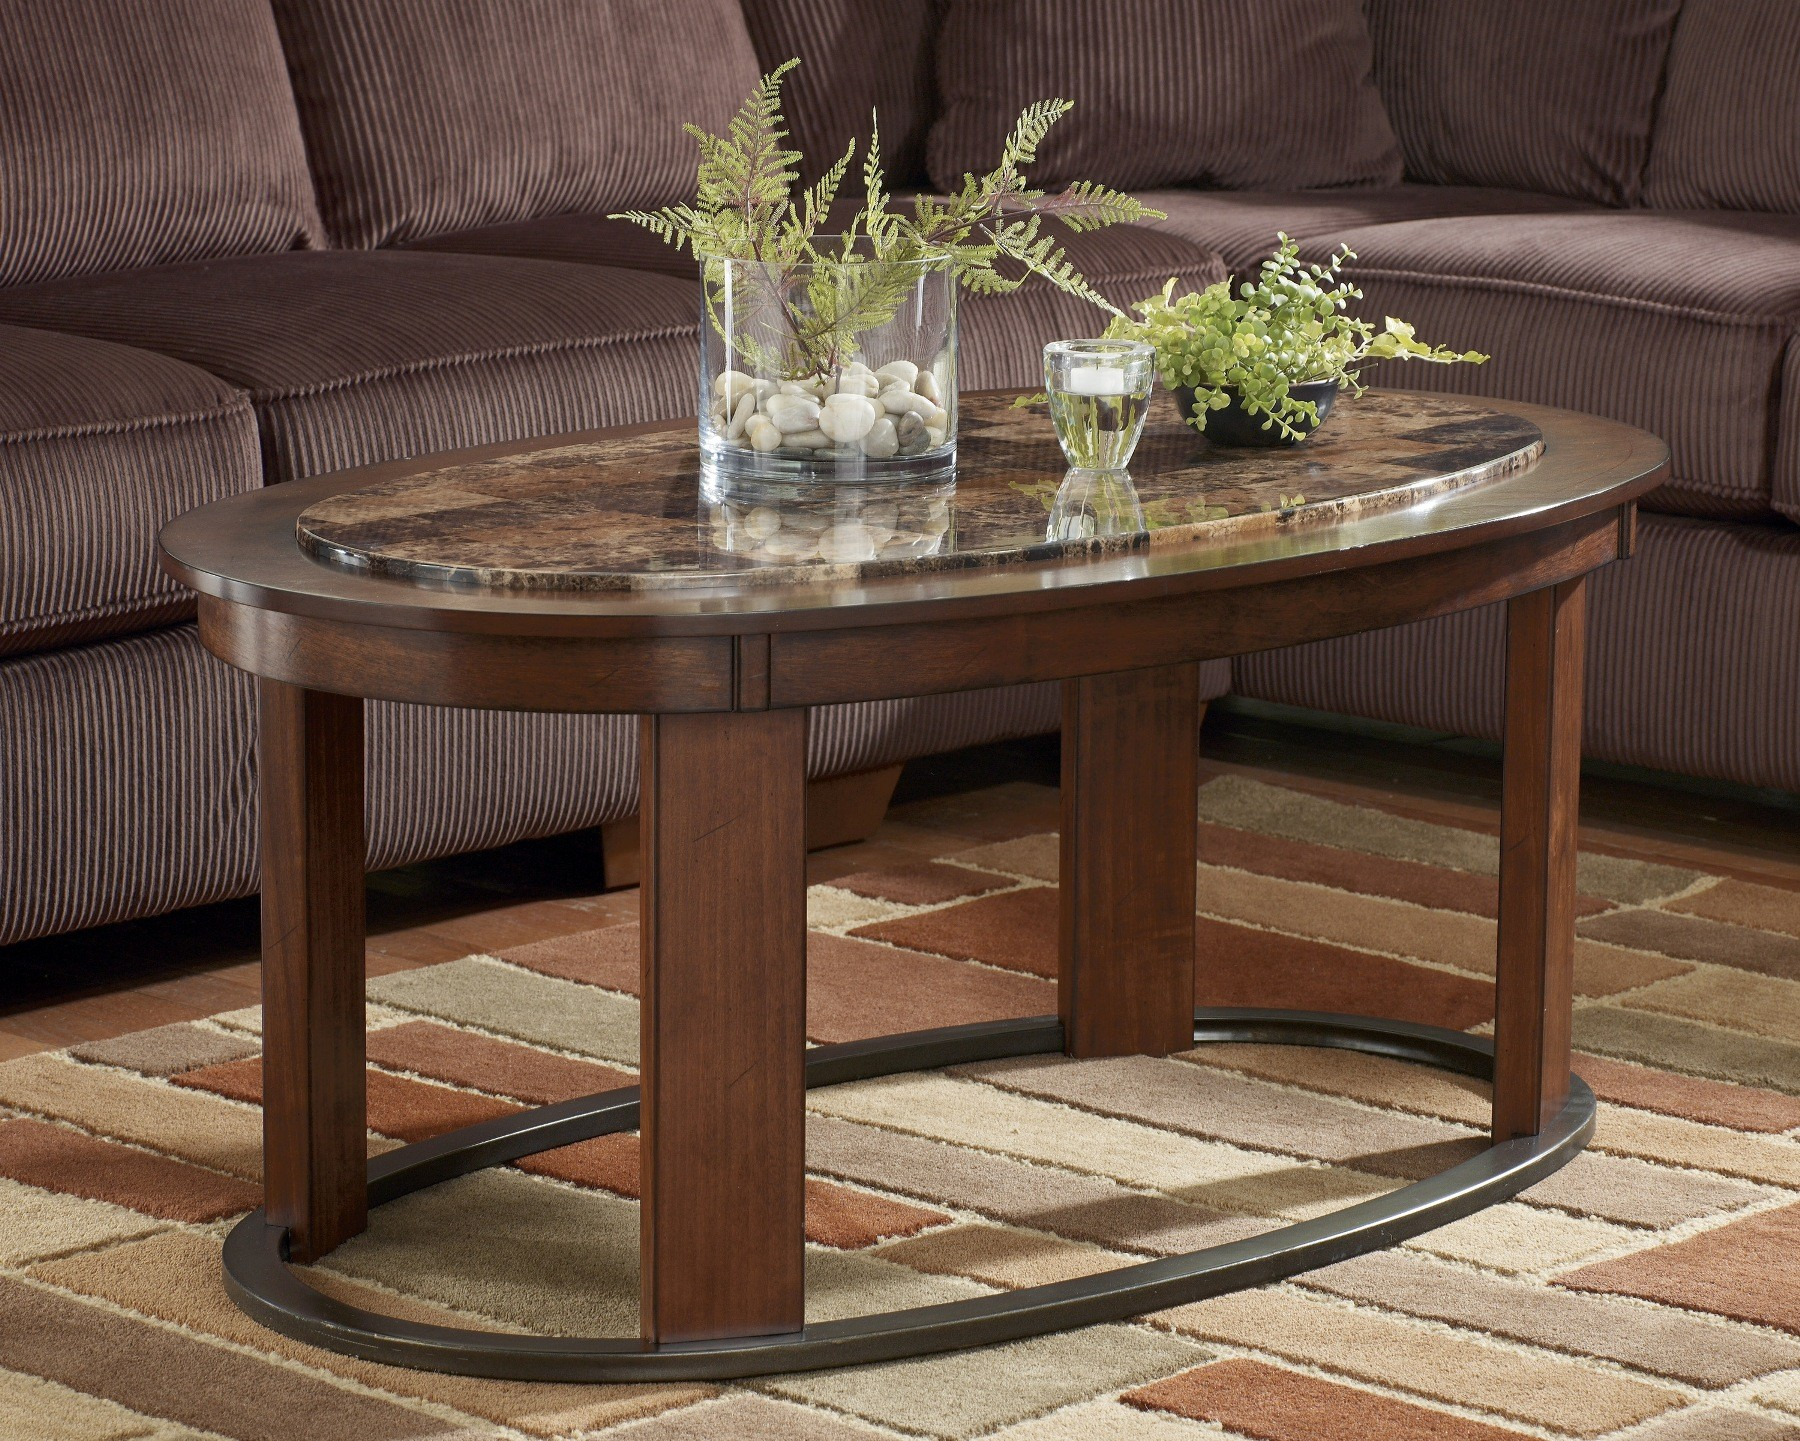 Living Room Design Amazing Oval Coffee Table For Home Furniture